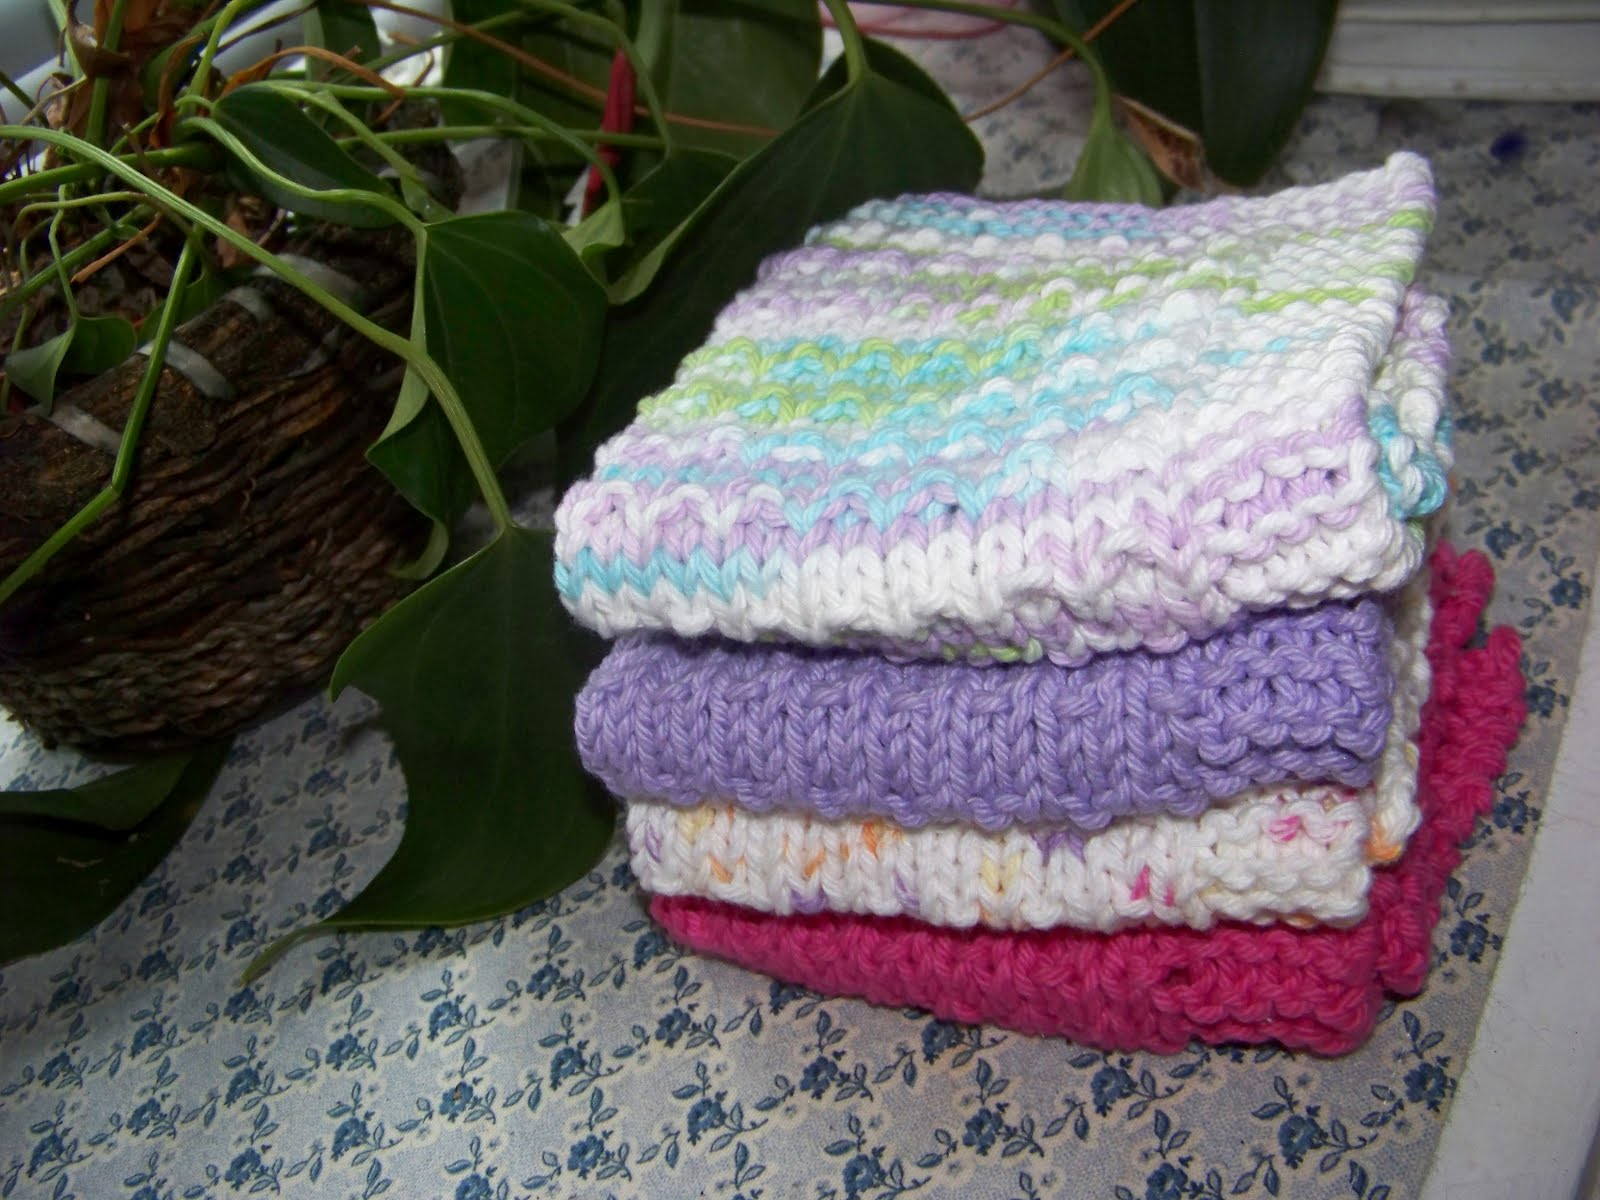 Knitting A Dishcloth Pattern Easy : Berkshire Cottage: Easy Dishcloth Knitting Pattern